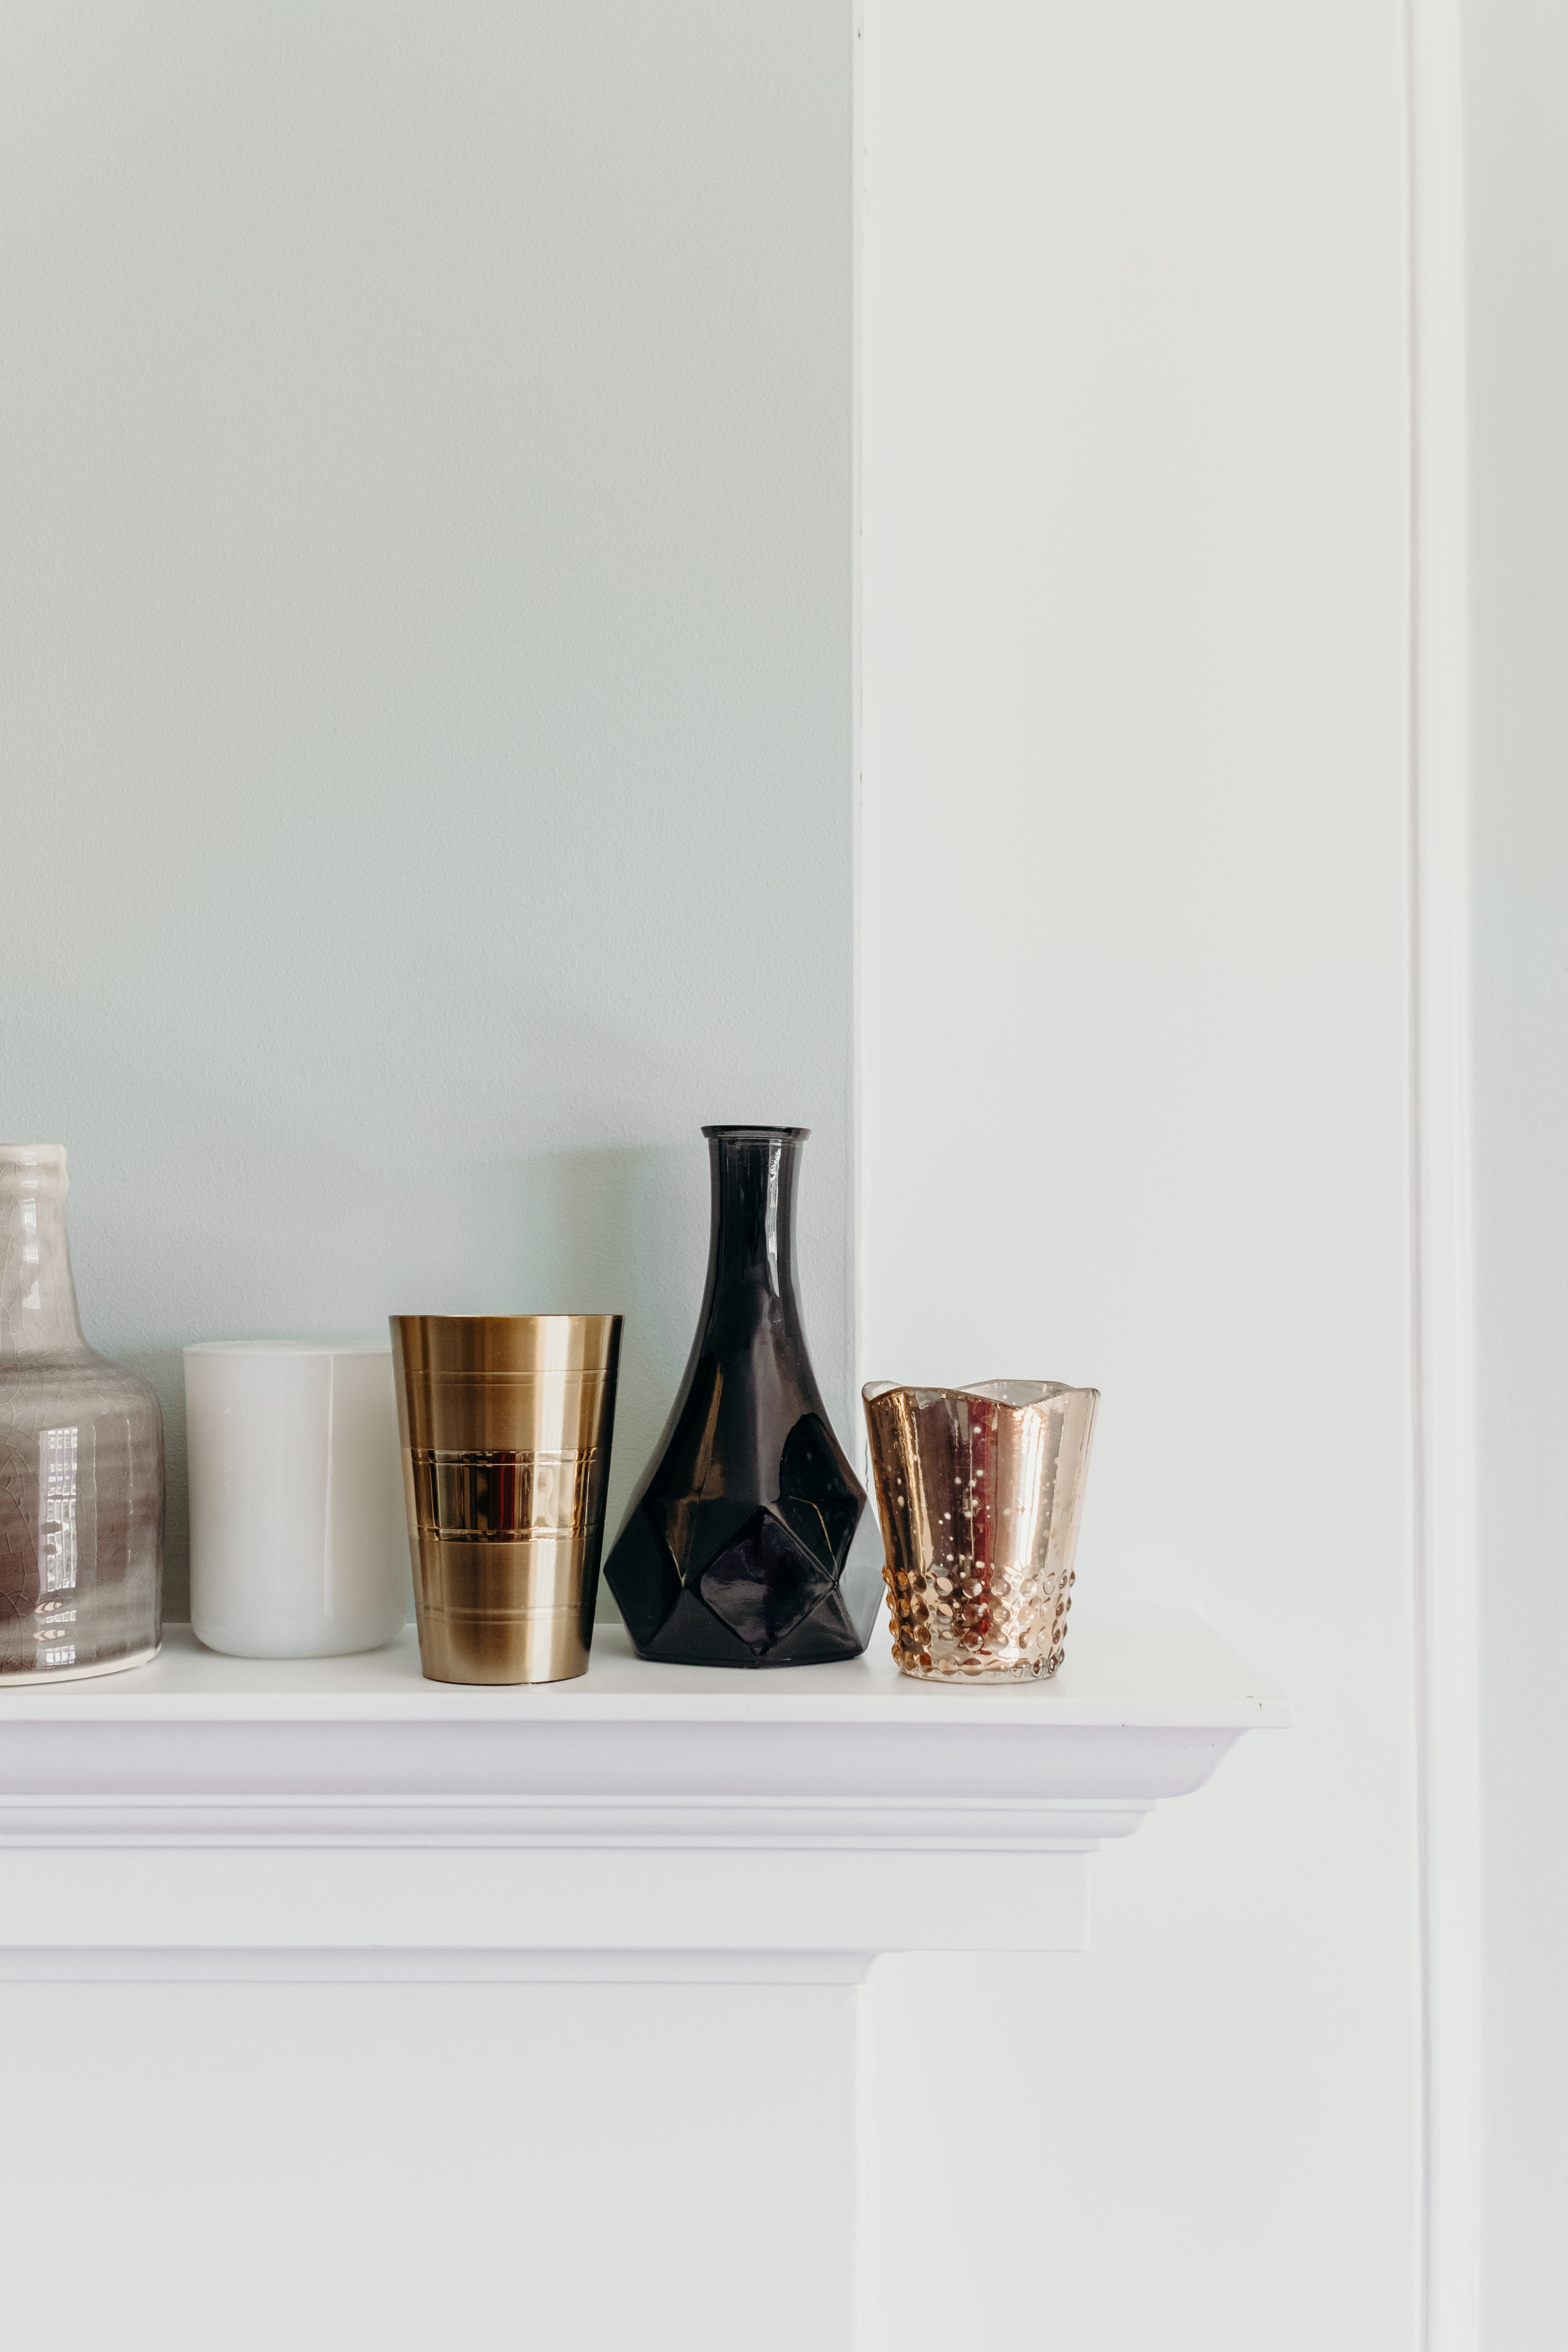 Fireplace mantle with eclectic vases